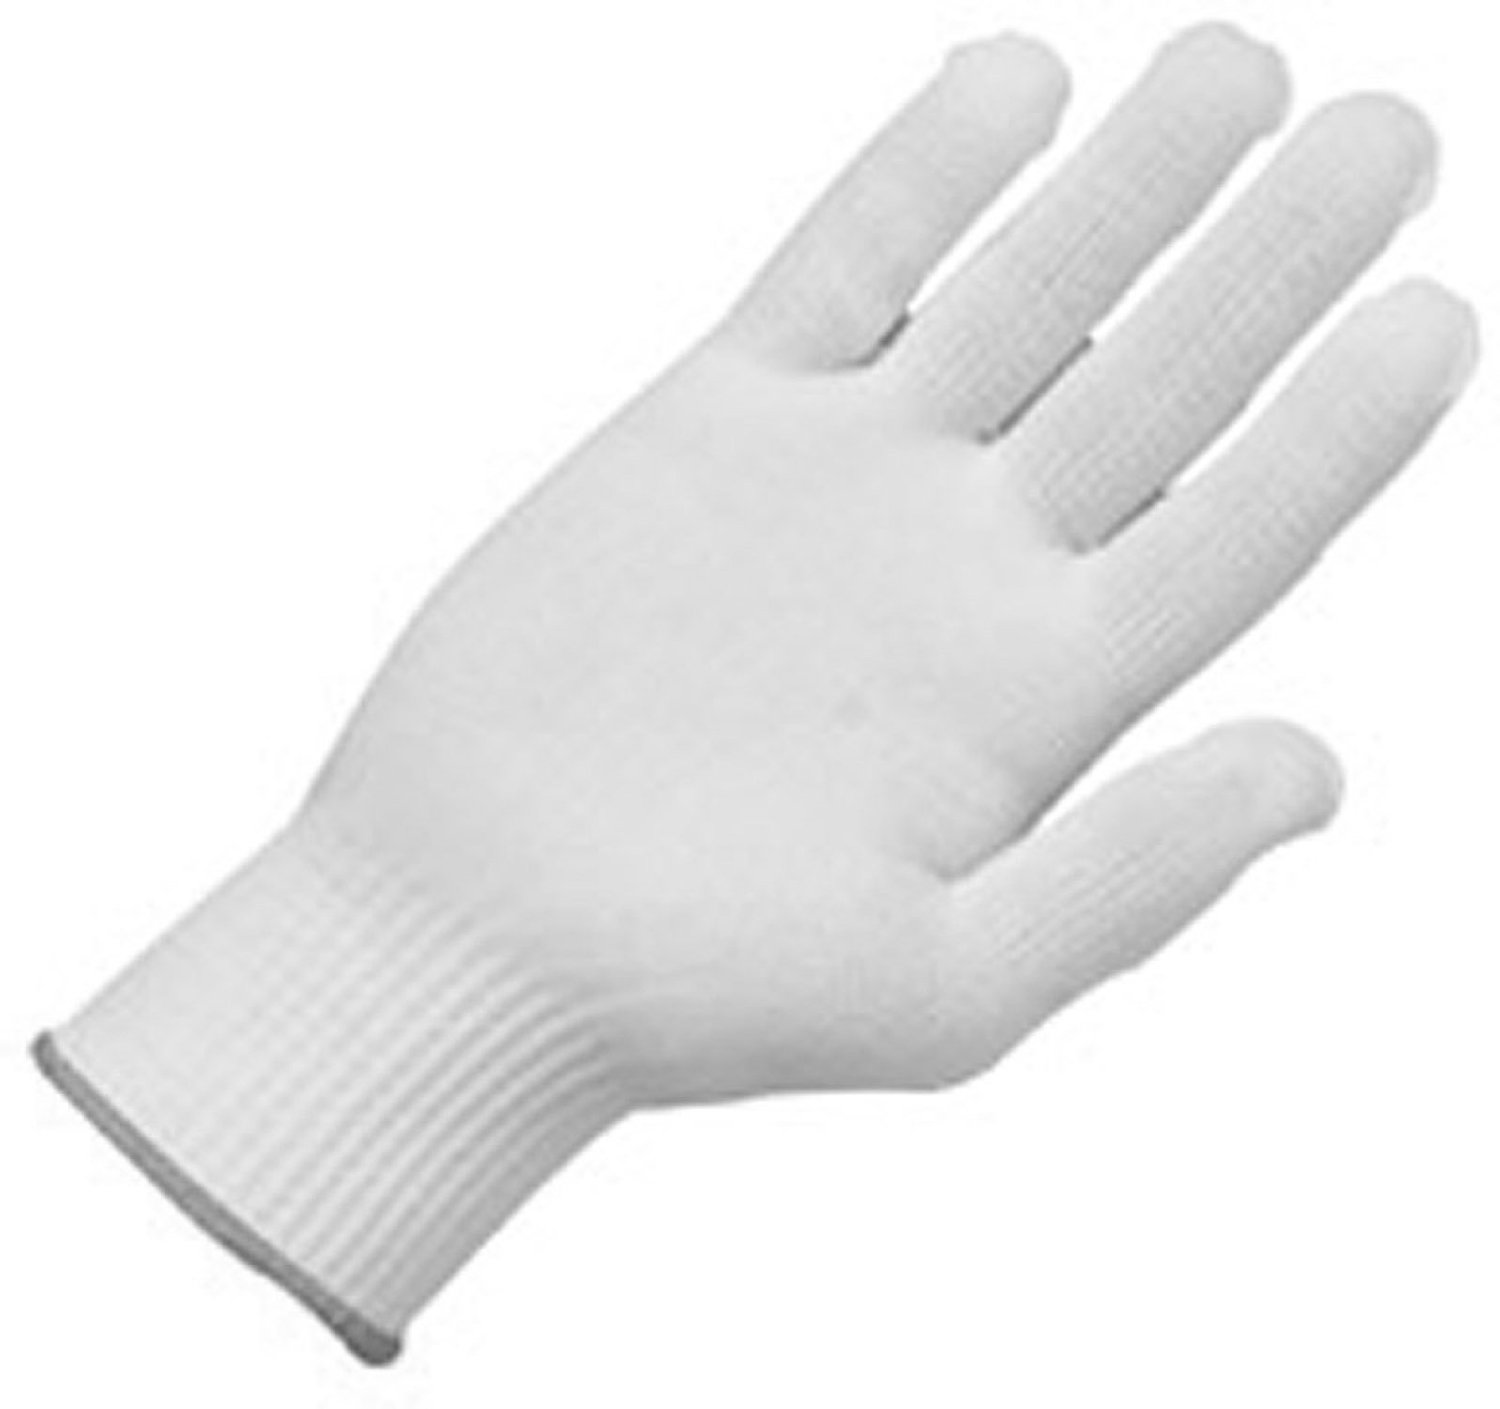 Zenport Gloves GN025 12 Pair Full Finger Gloves, Glove Liner, 10 Gram Nylon Construction